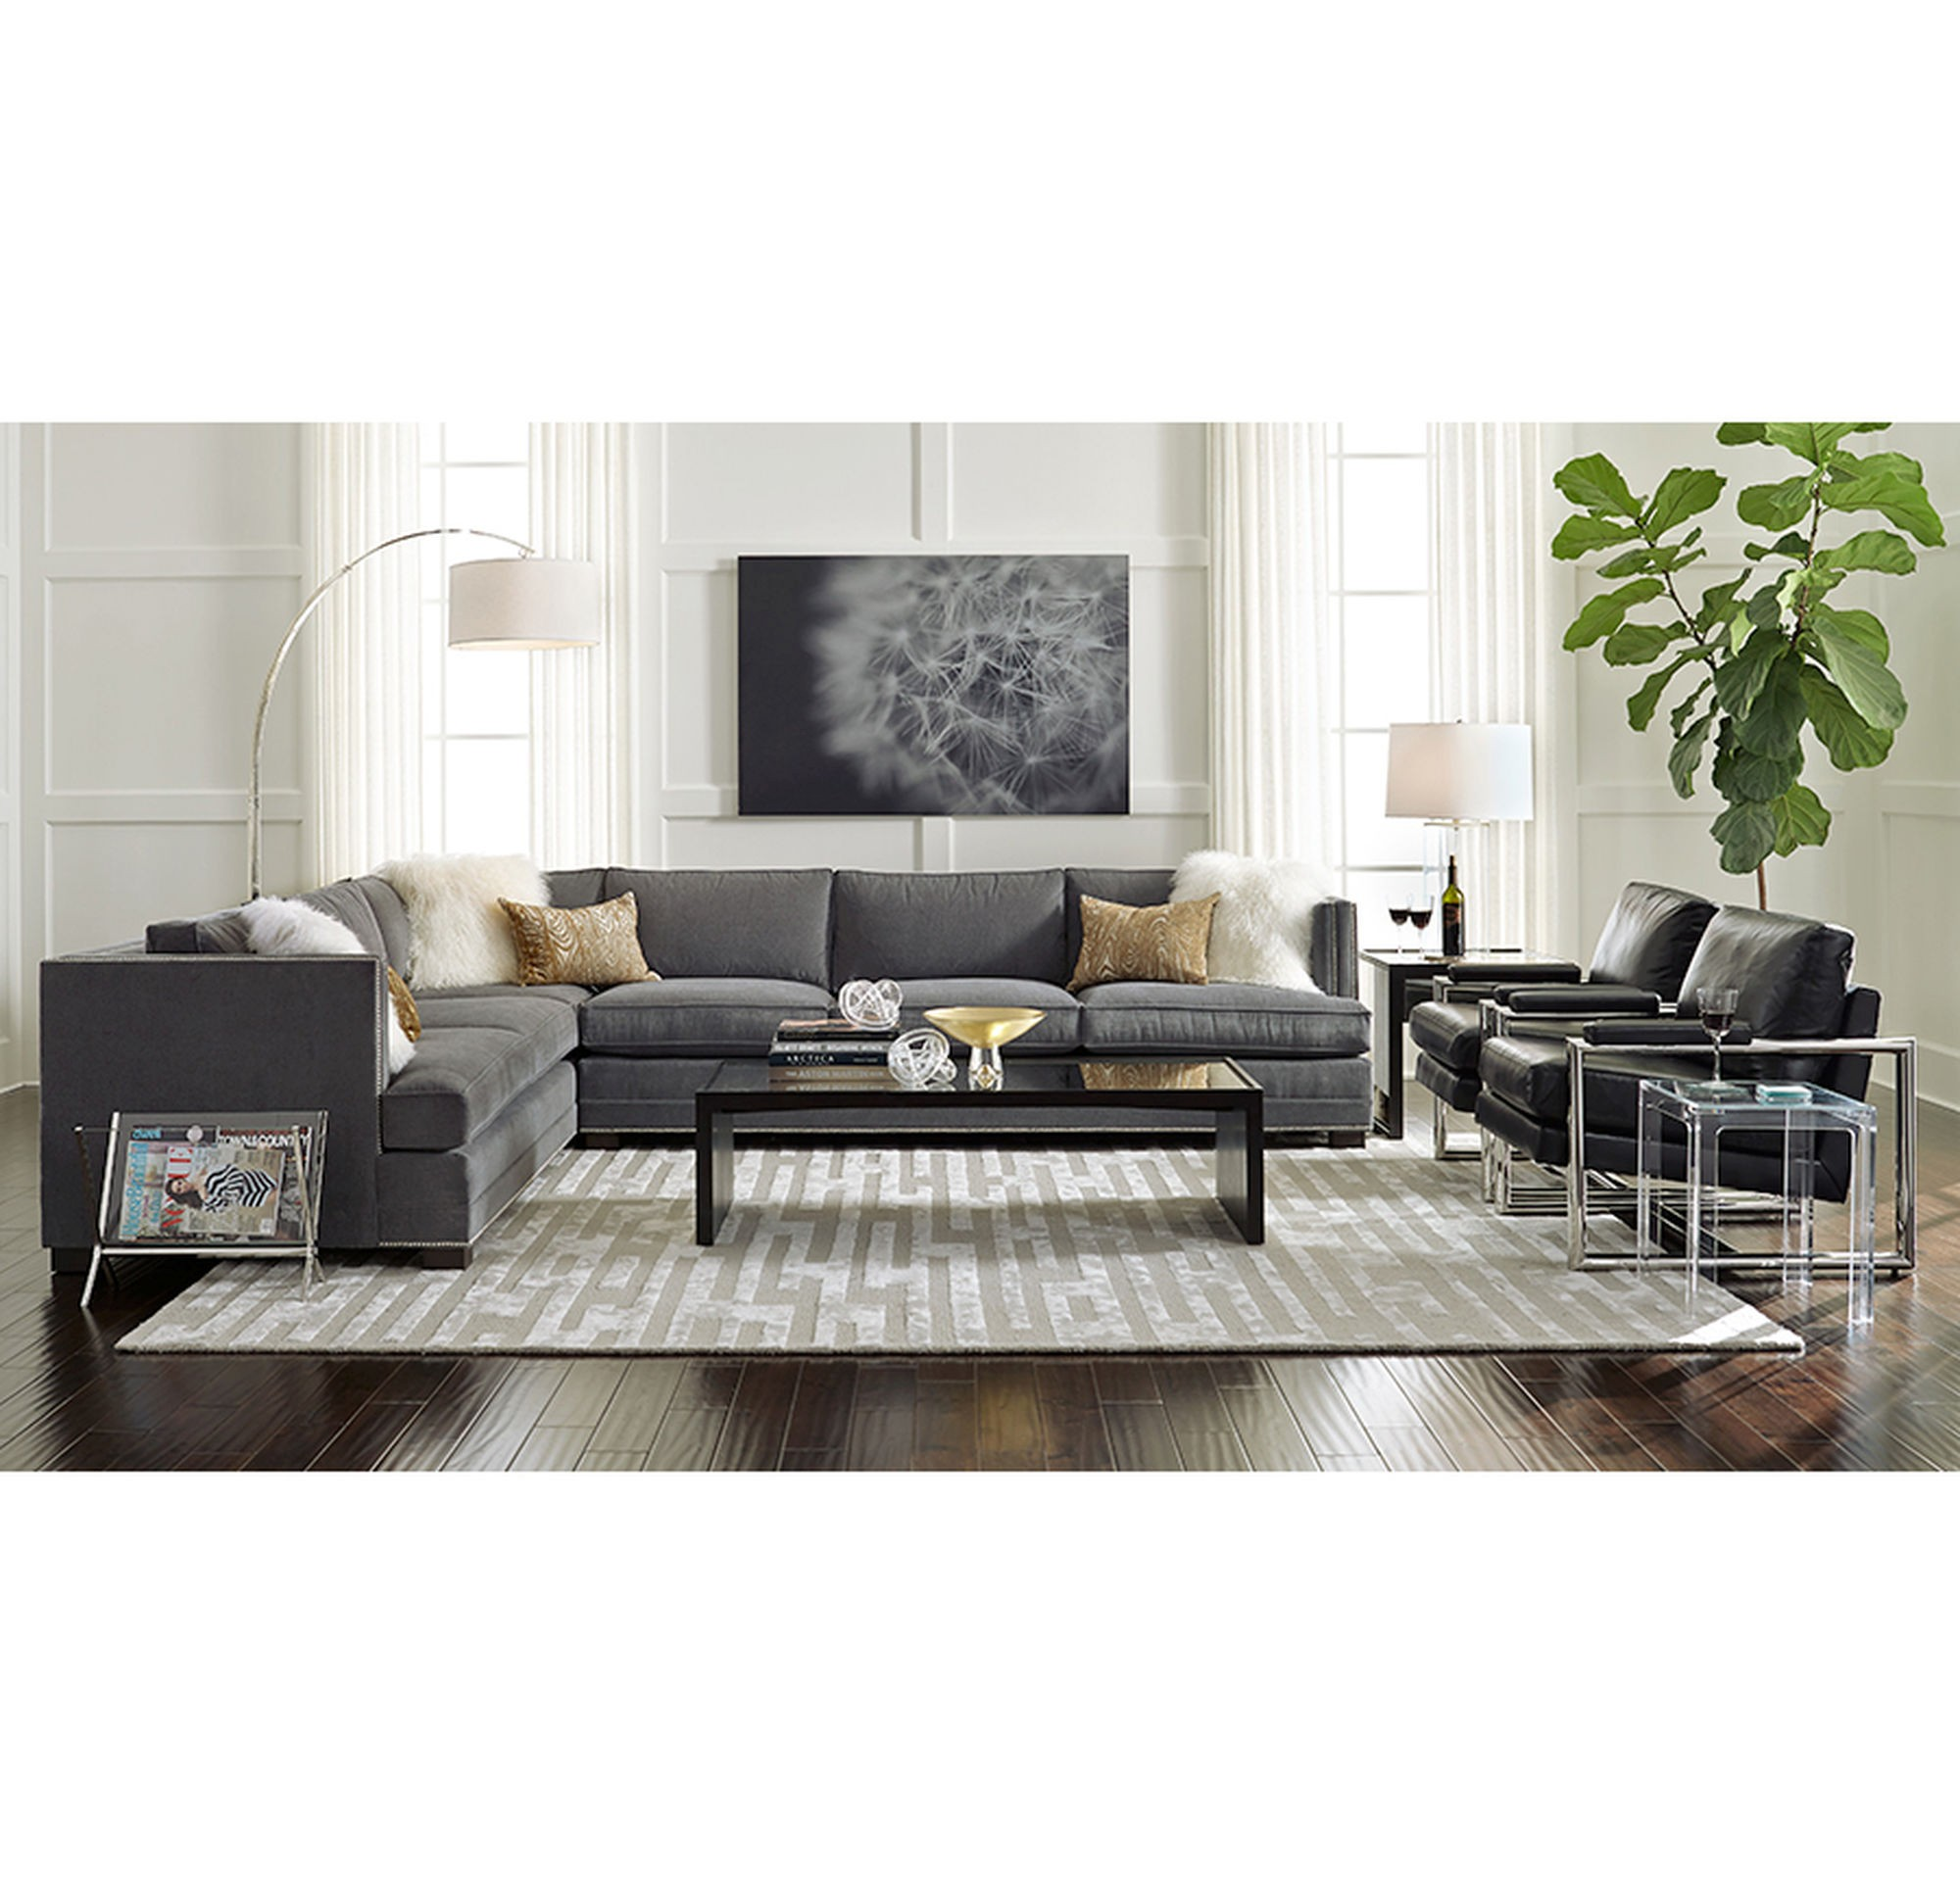 Fancy Mitchell Gold Sofa Reviews Photograph Modern Sofa Design